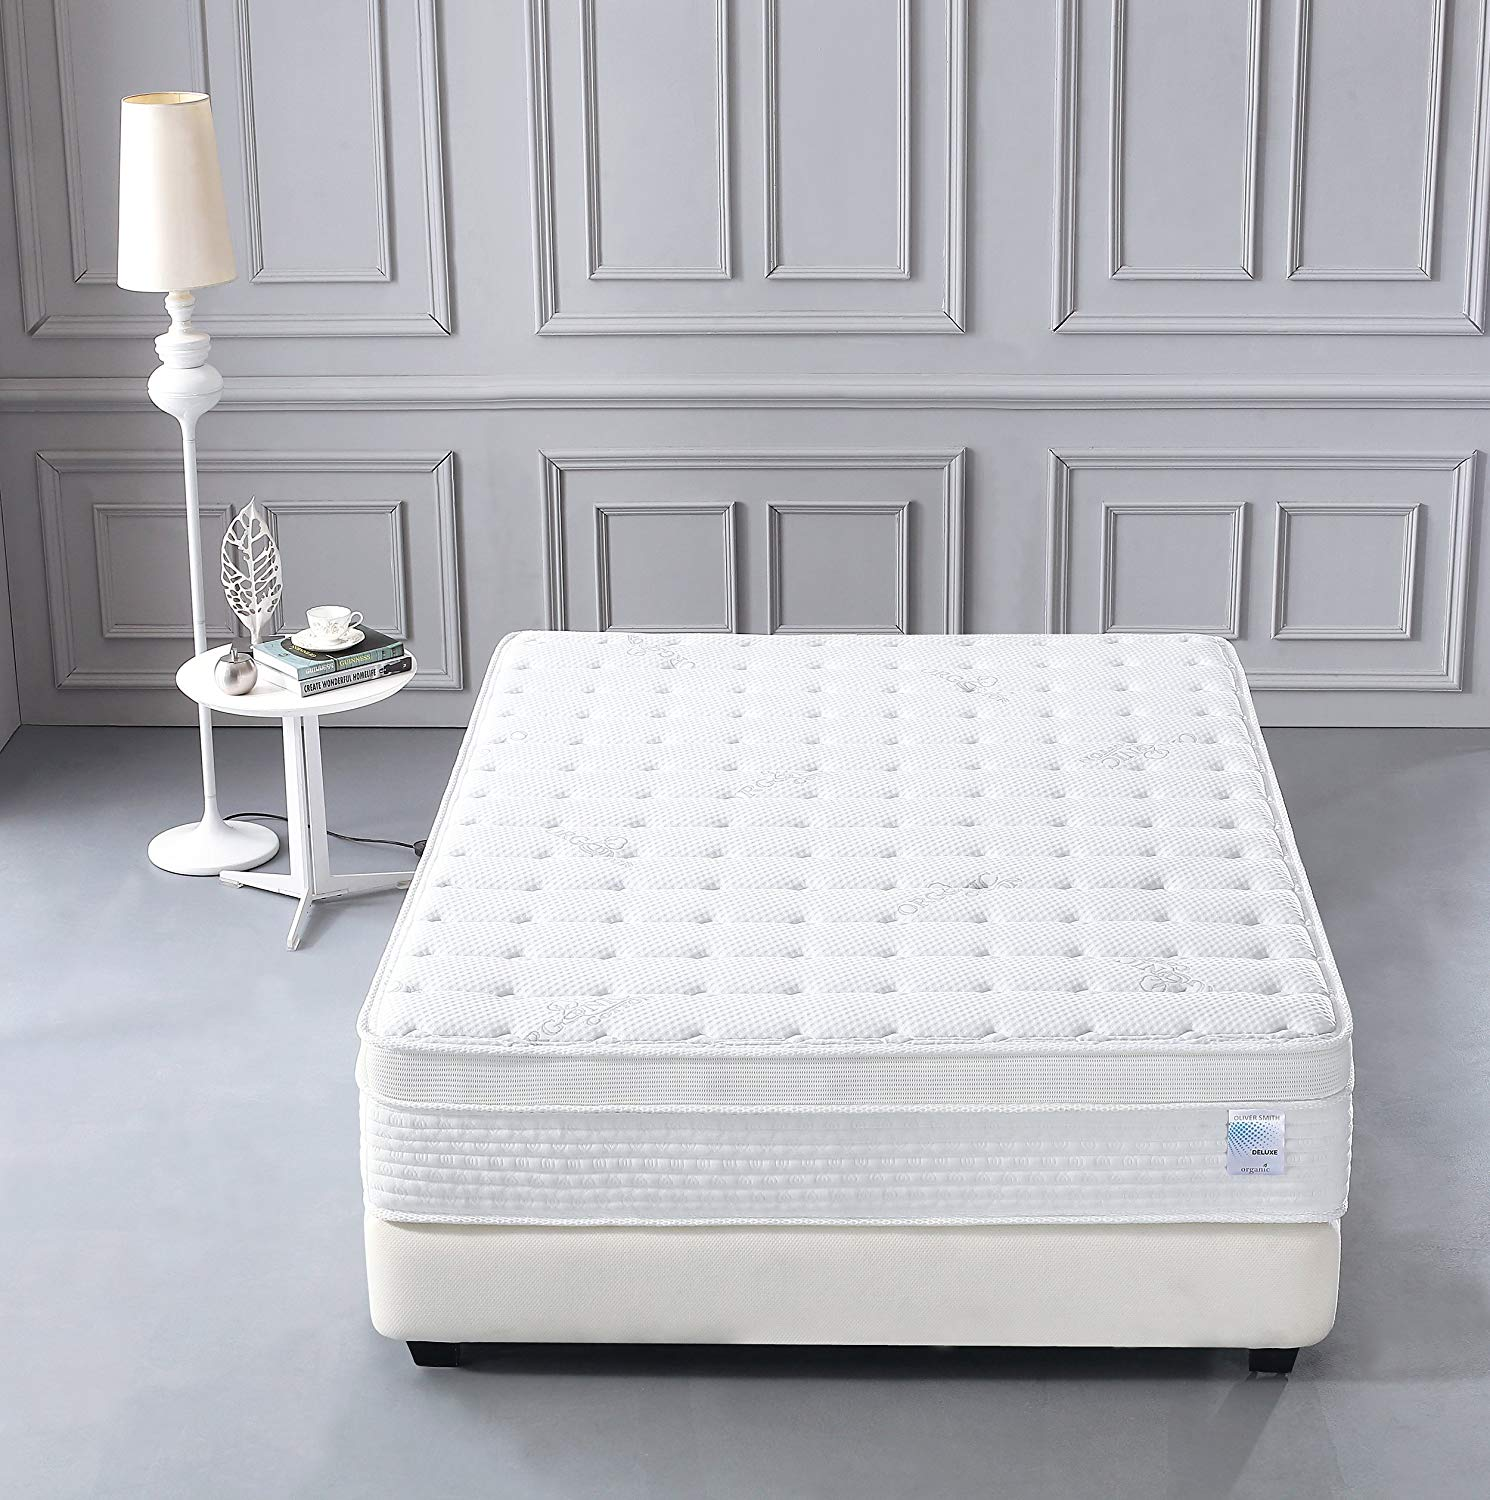 Smith & Oliver Сheap Memory Foam Mattress Review by www.snoremagazine.com